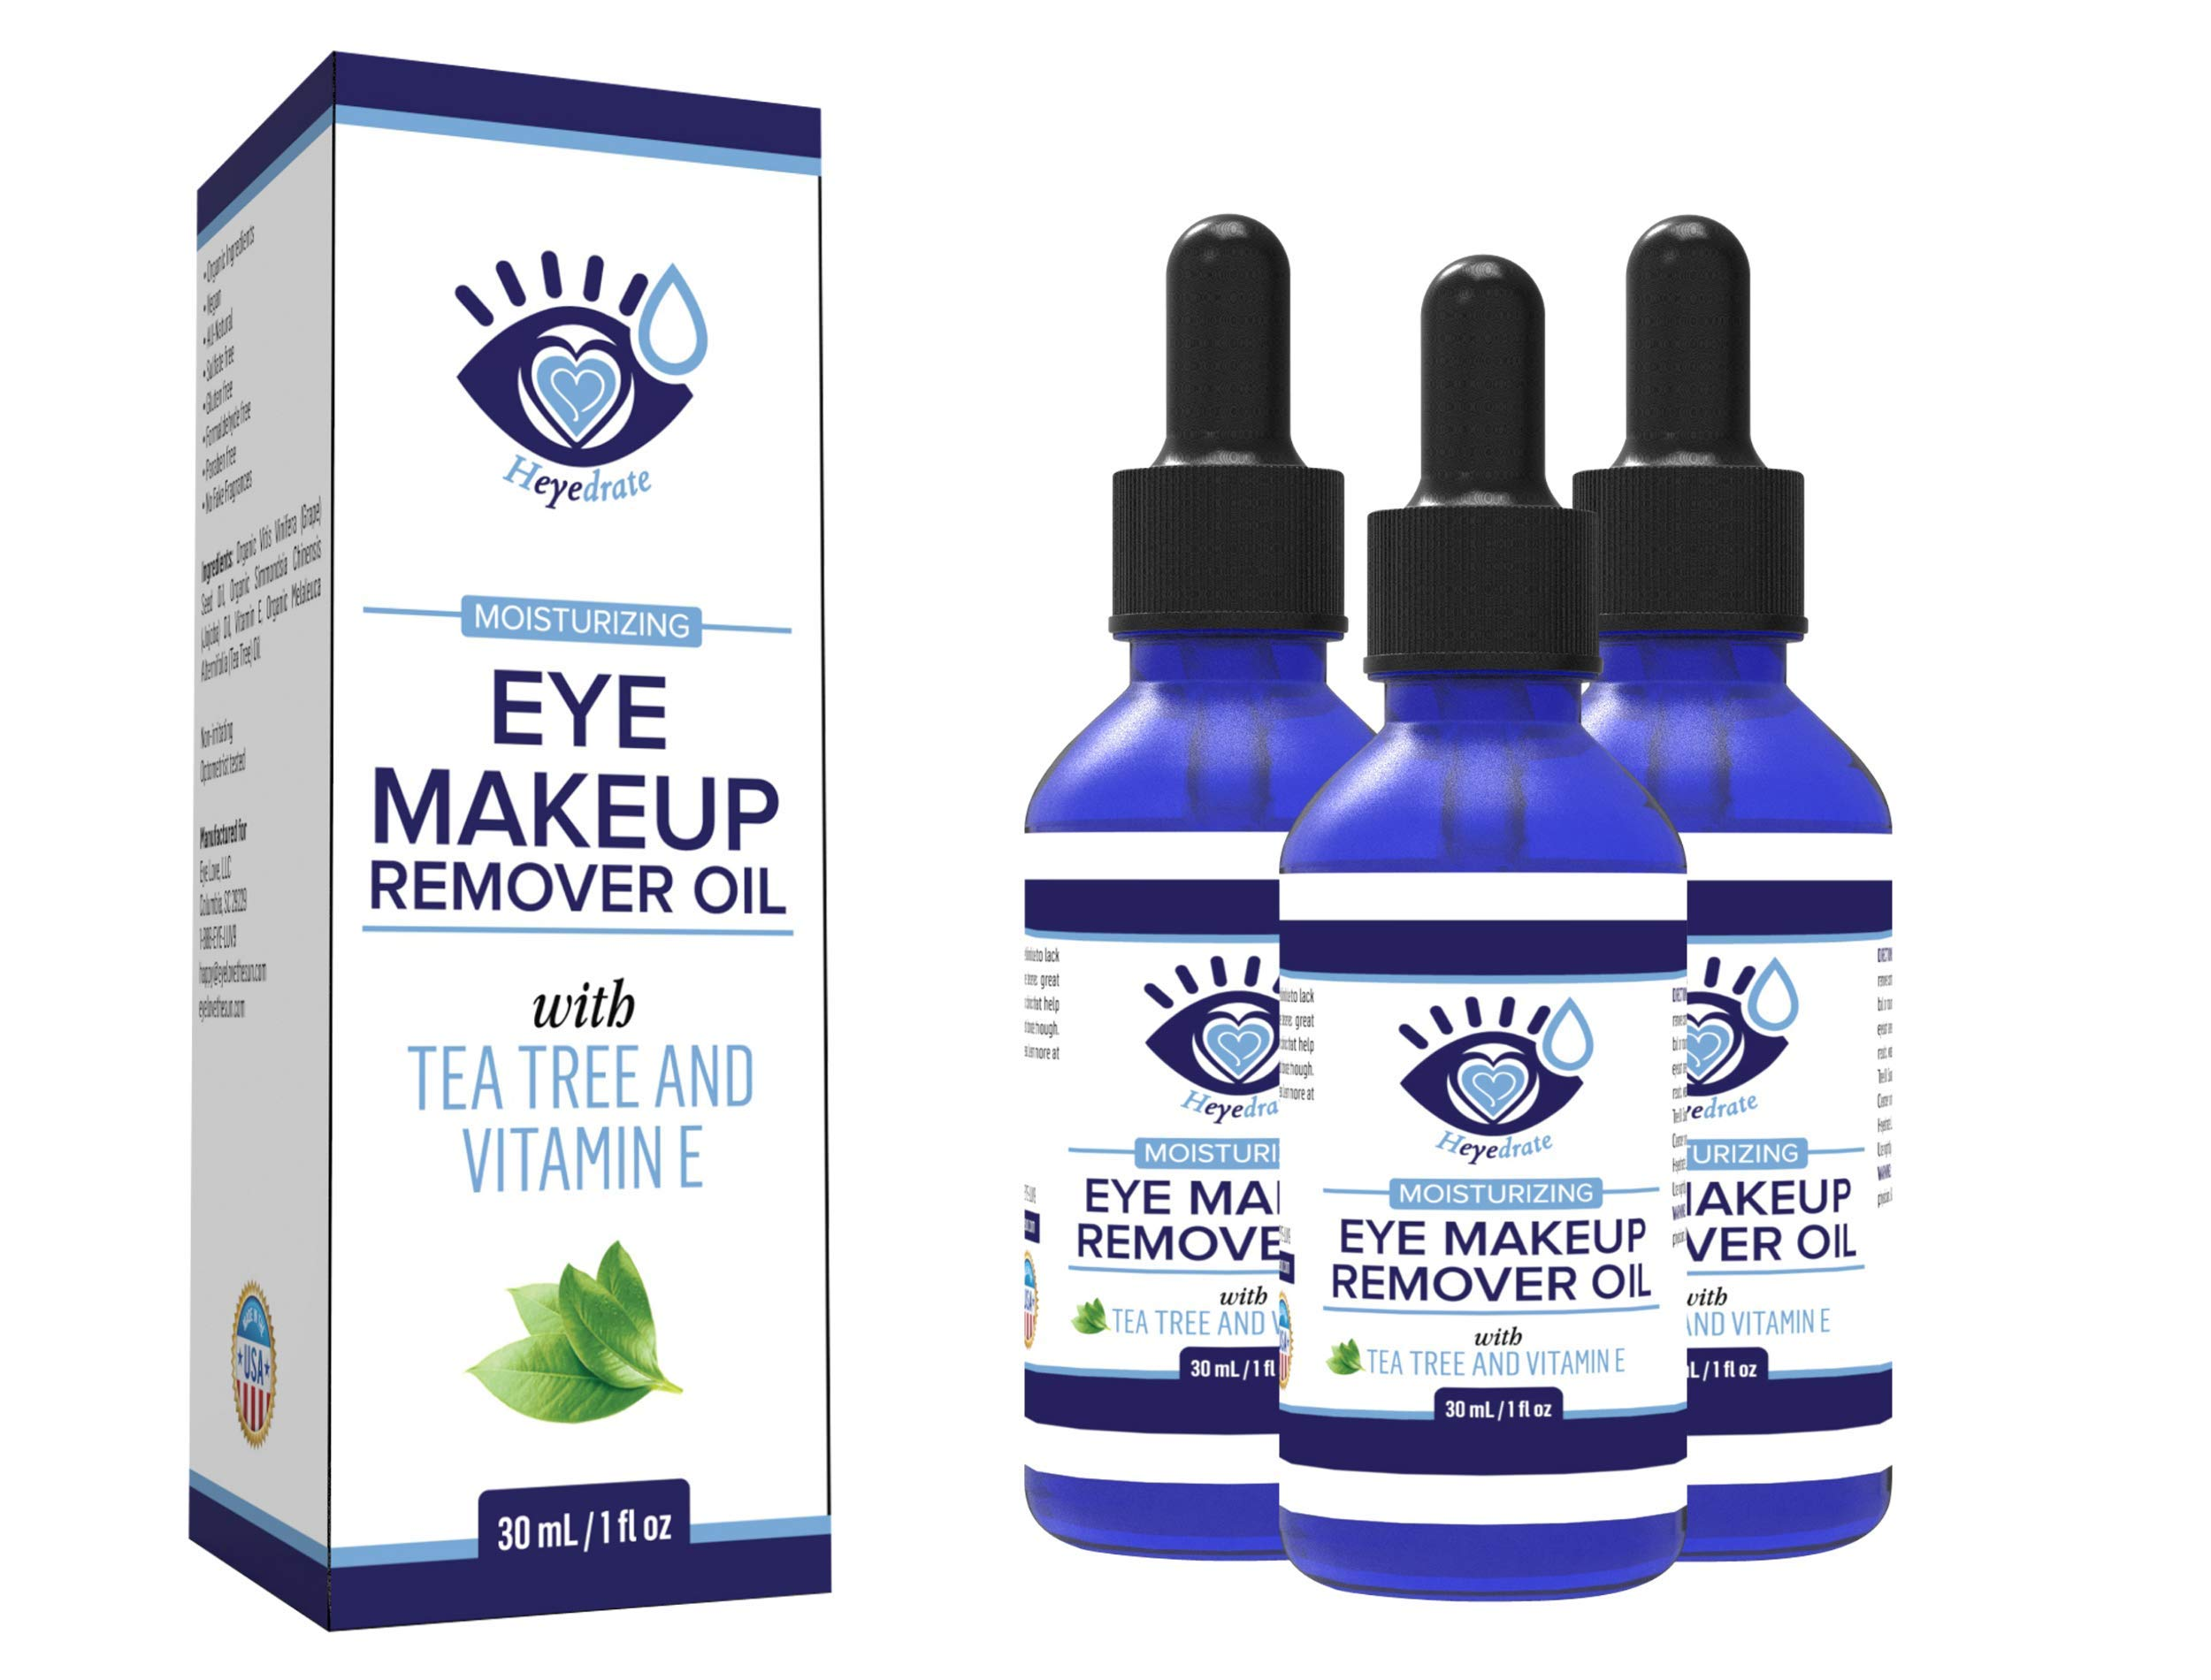 Gentle, Waterproof Eye Makeup Remover - Moisturizing and Organic with Vitamin E and Tea Tree Oil to Support Dry, Itchy Eyelids and Irritated Eyes (3 Pack) by Eye Love